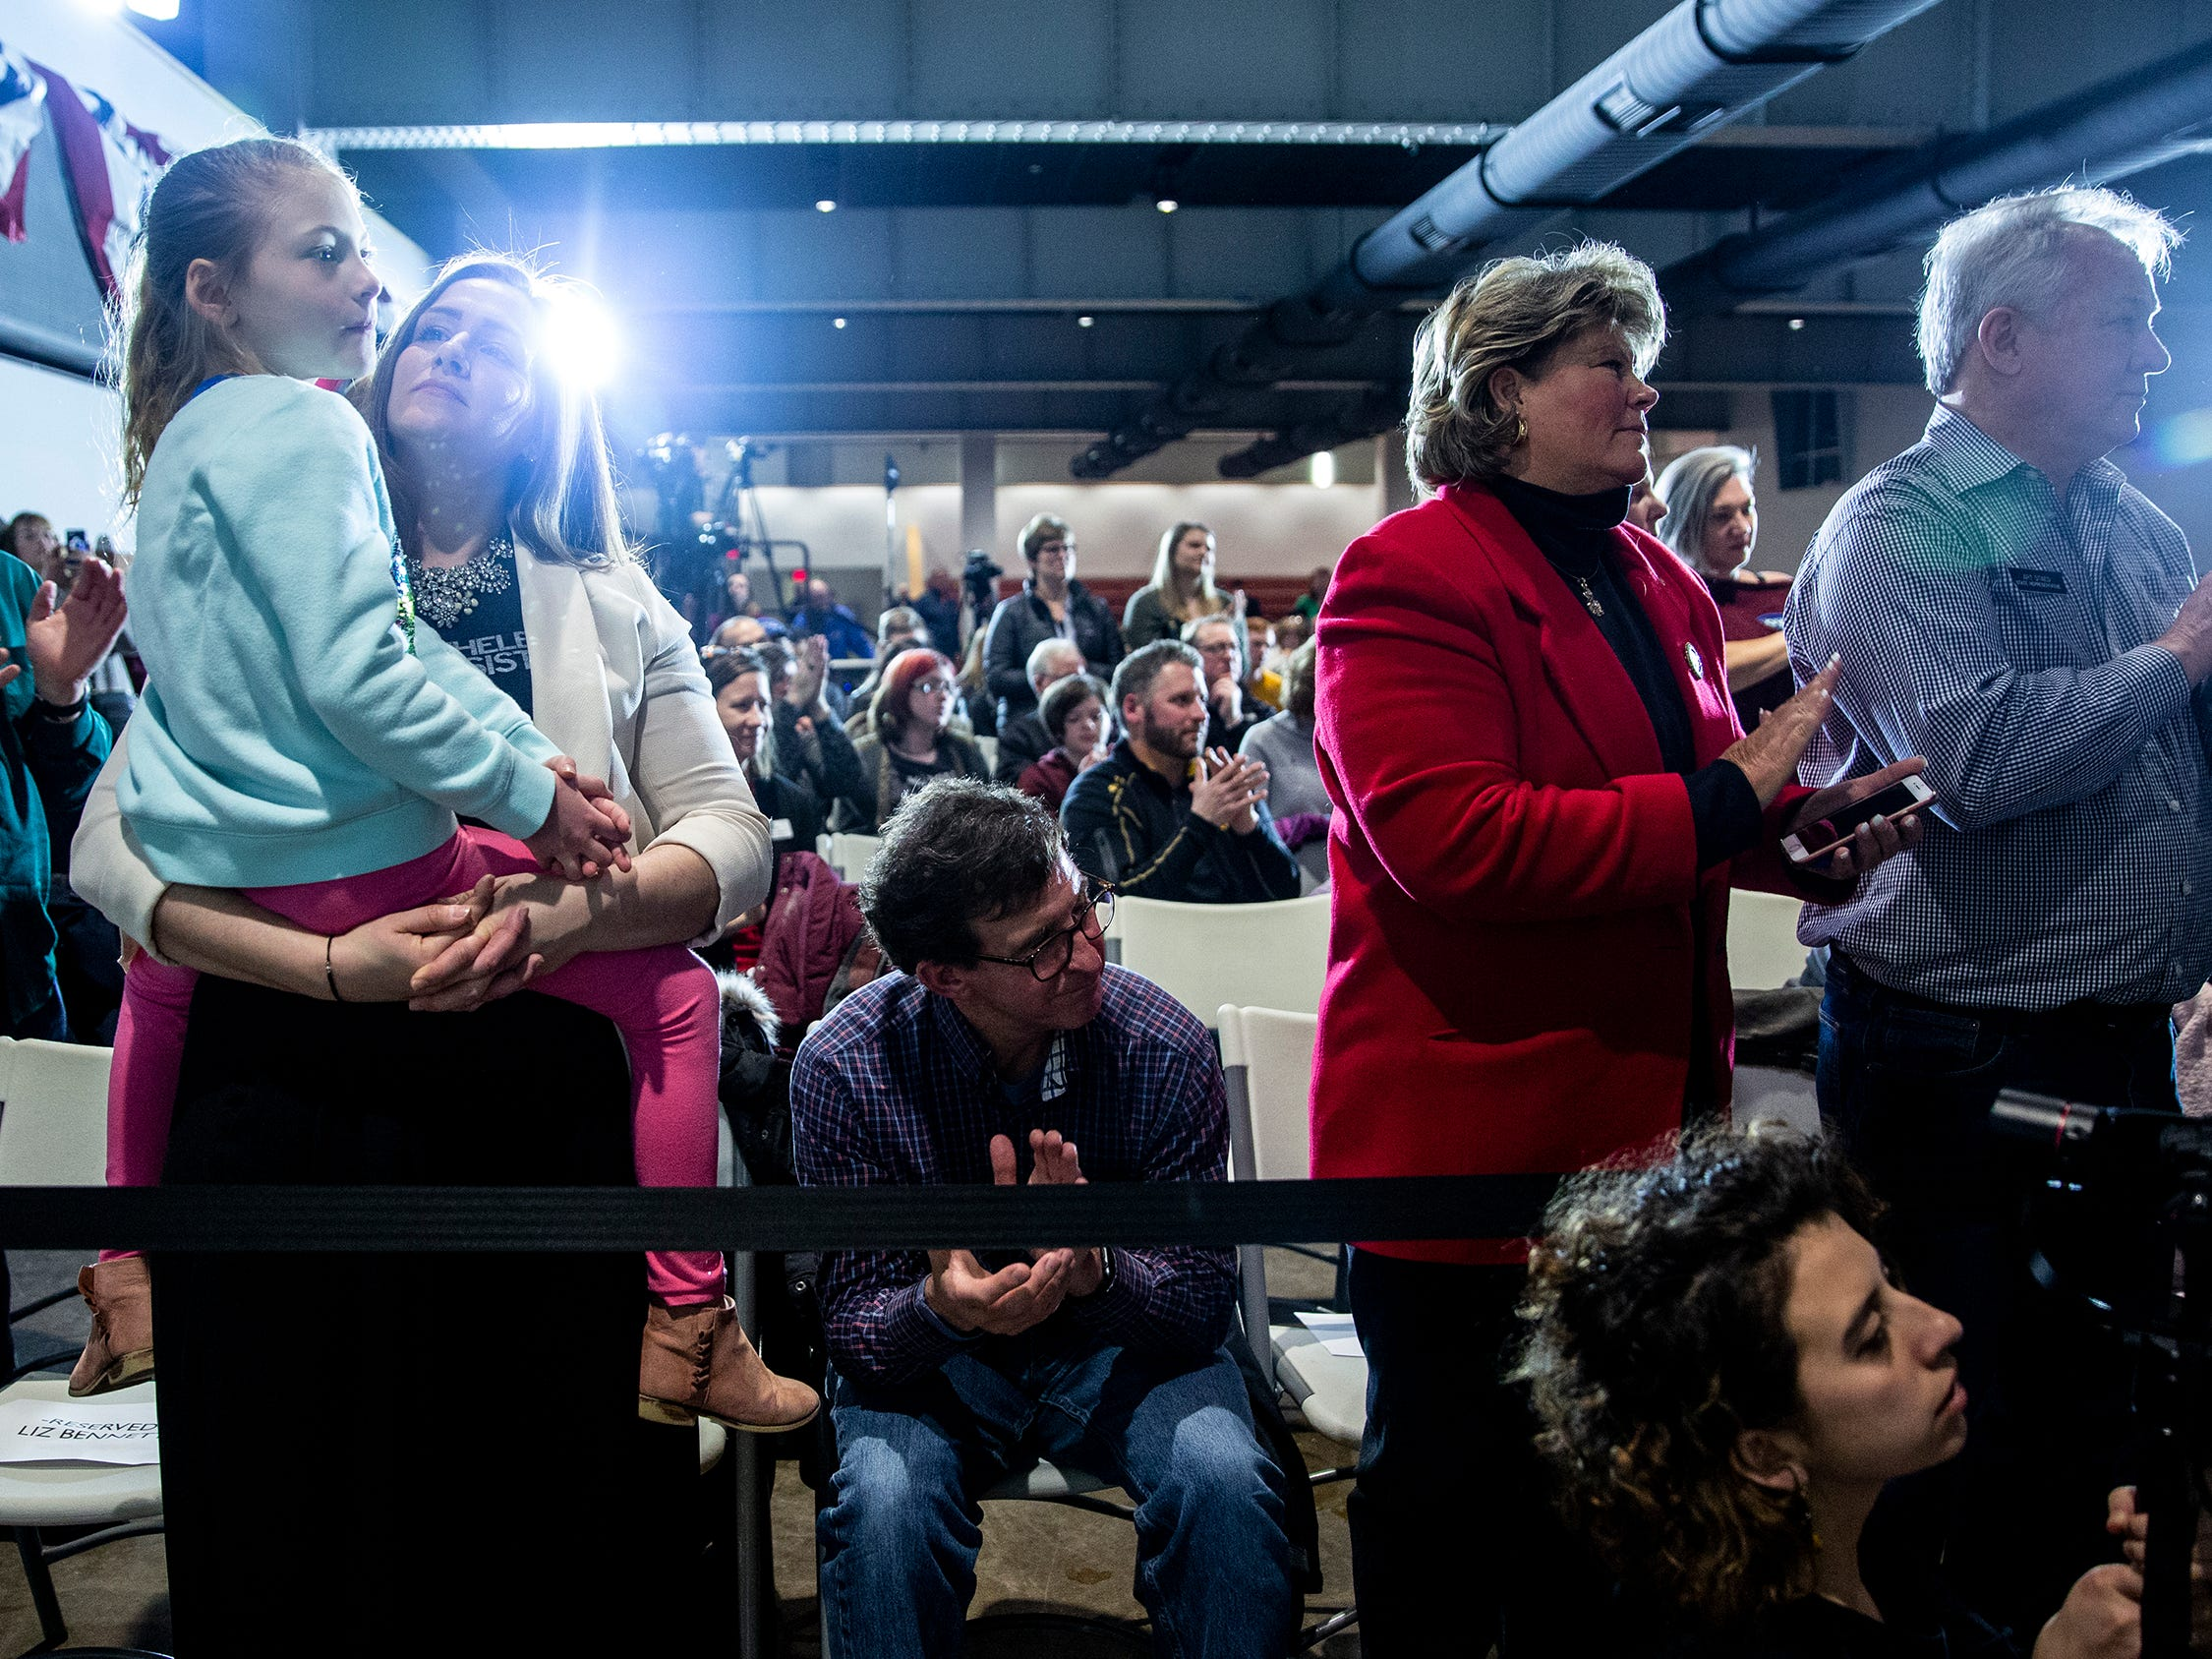 The crowd gathered in the Veterans Memorial Building in downtown Cedar Rapids listens and applauds Sen. Elizabeth Warren, D-Mass, on Sunday, Feb. 10, 2019. About 200 people attended her first campaign stop in Iowa after officially announcing her 2020 campaign.